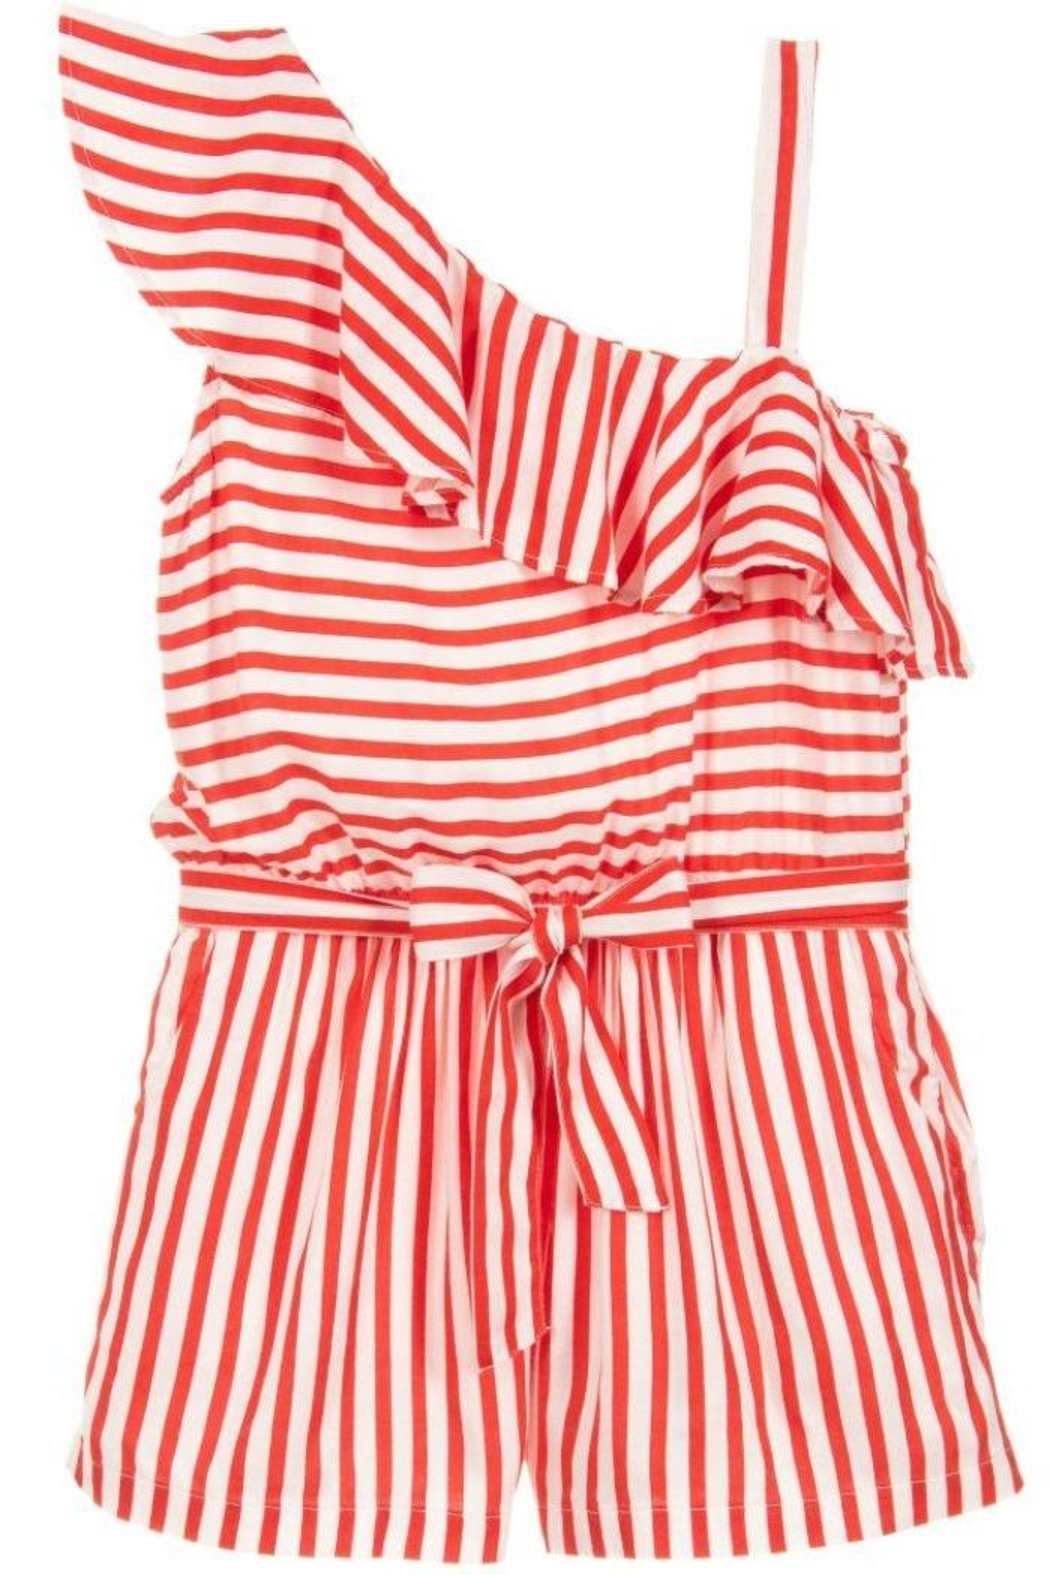 e7ef72200e Mayoral Red Striped Playsuit from Mississippi by Popfizz Boutique ...